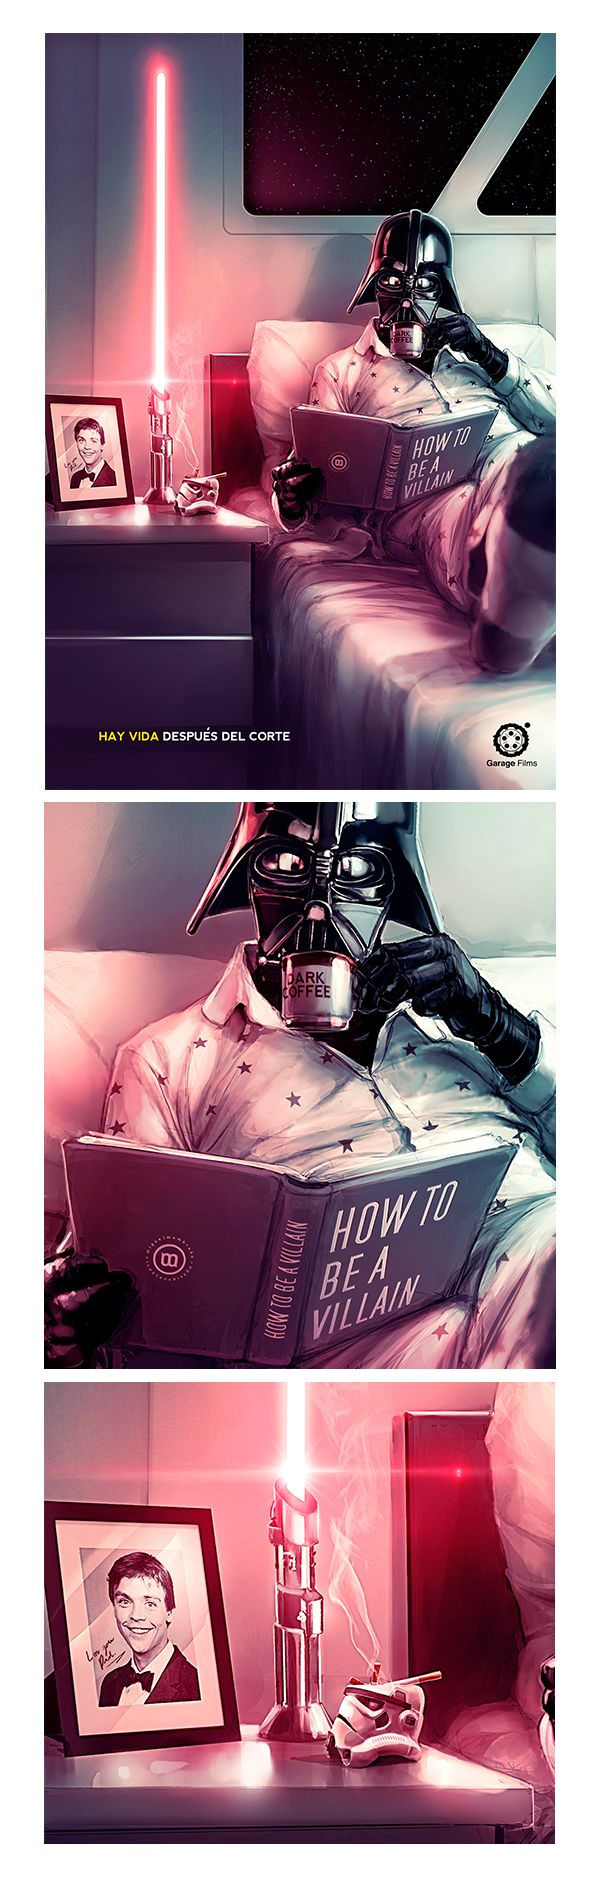 Vader's Day Off. Reads How to Be a Villain. Coffee in Bed. https://www.behance.net/gallery/22070807/Garage-Films-illustration?utm_medium=email